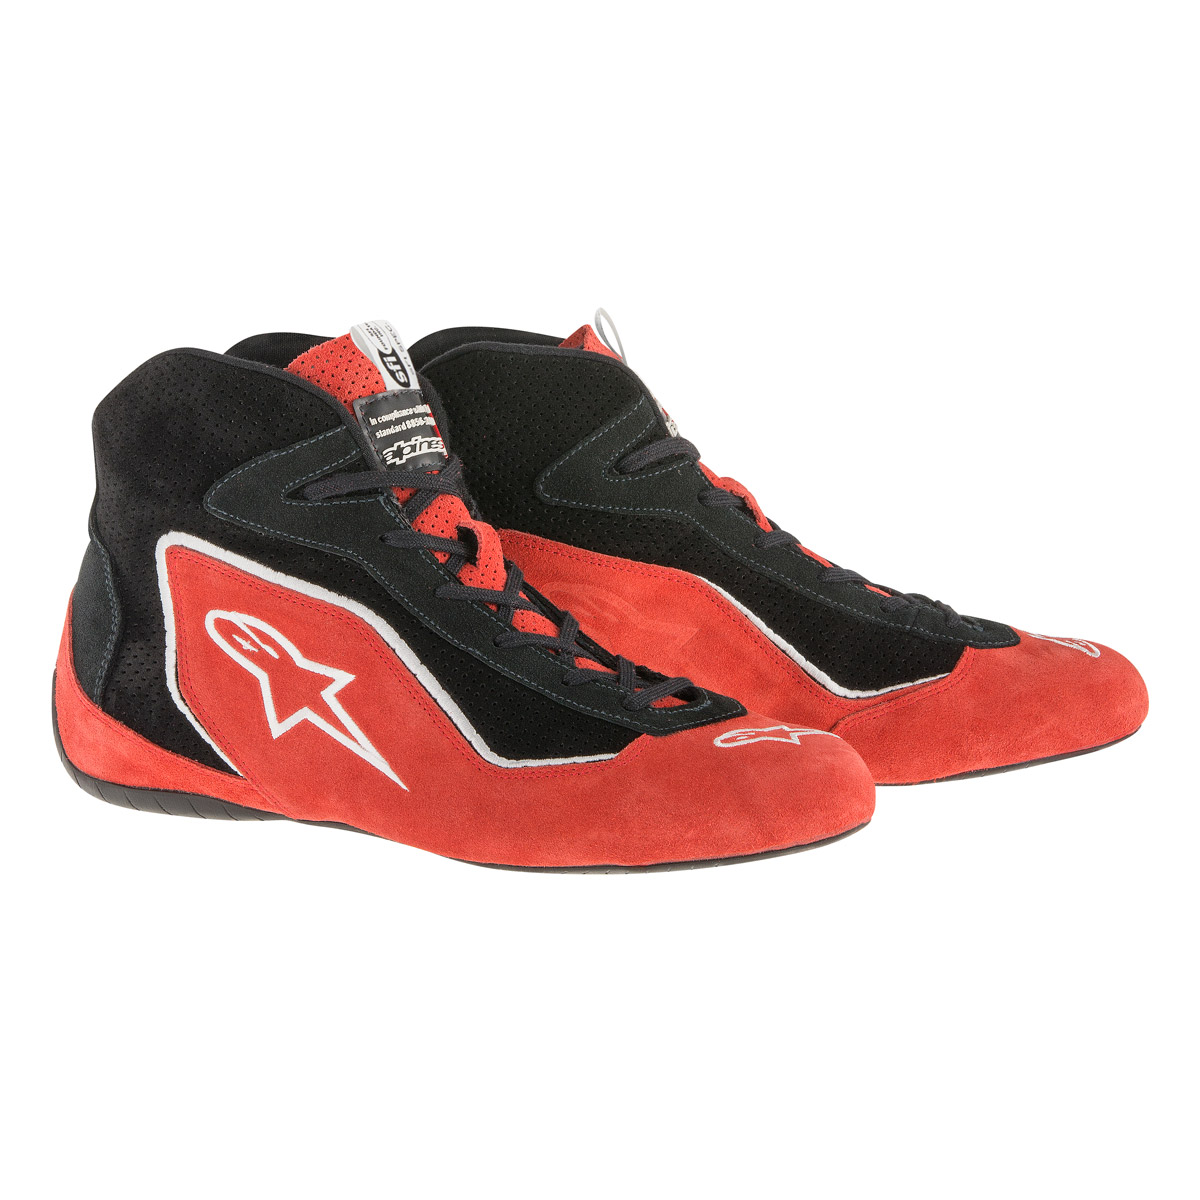 New Alpinestars SP Shoe